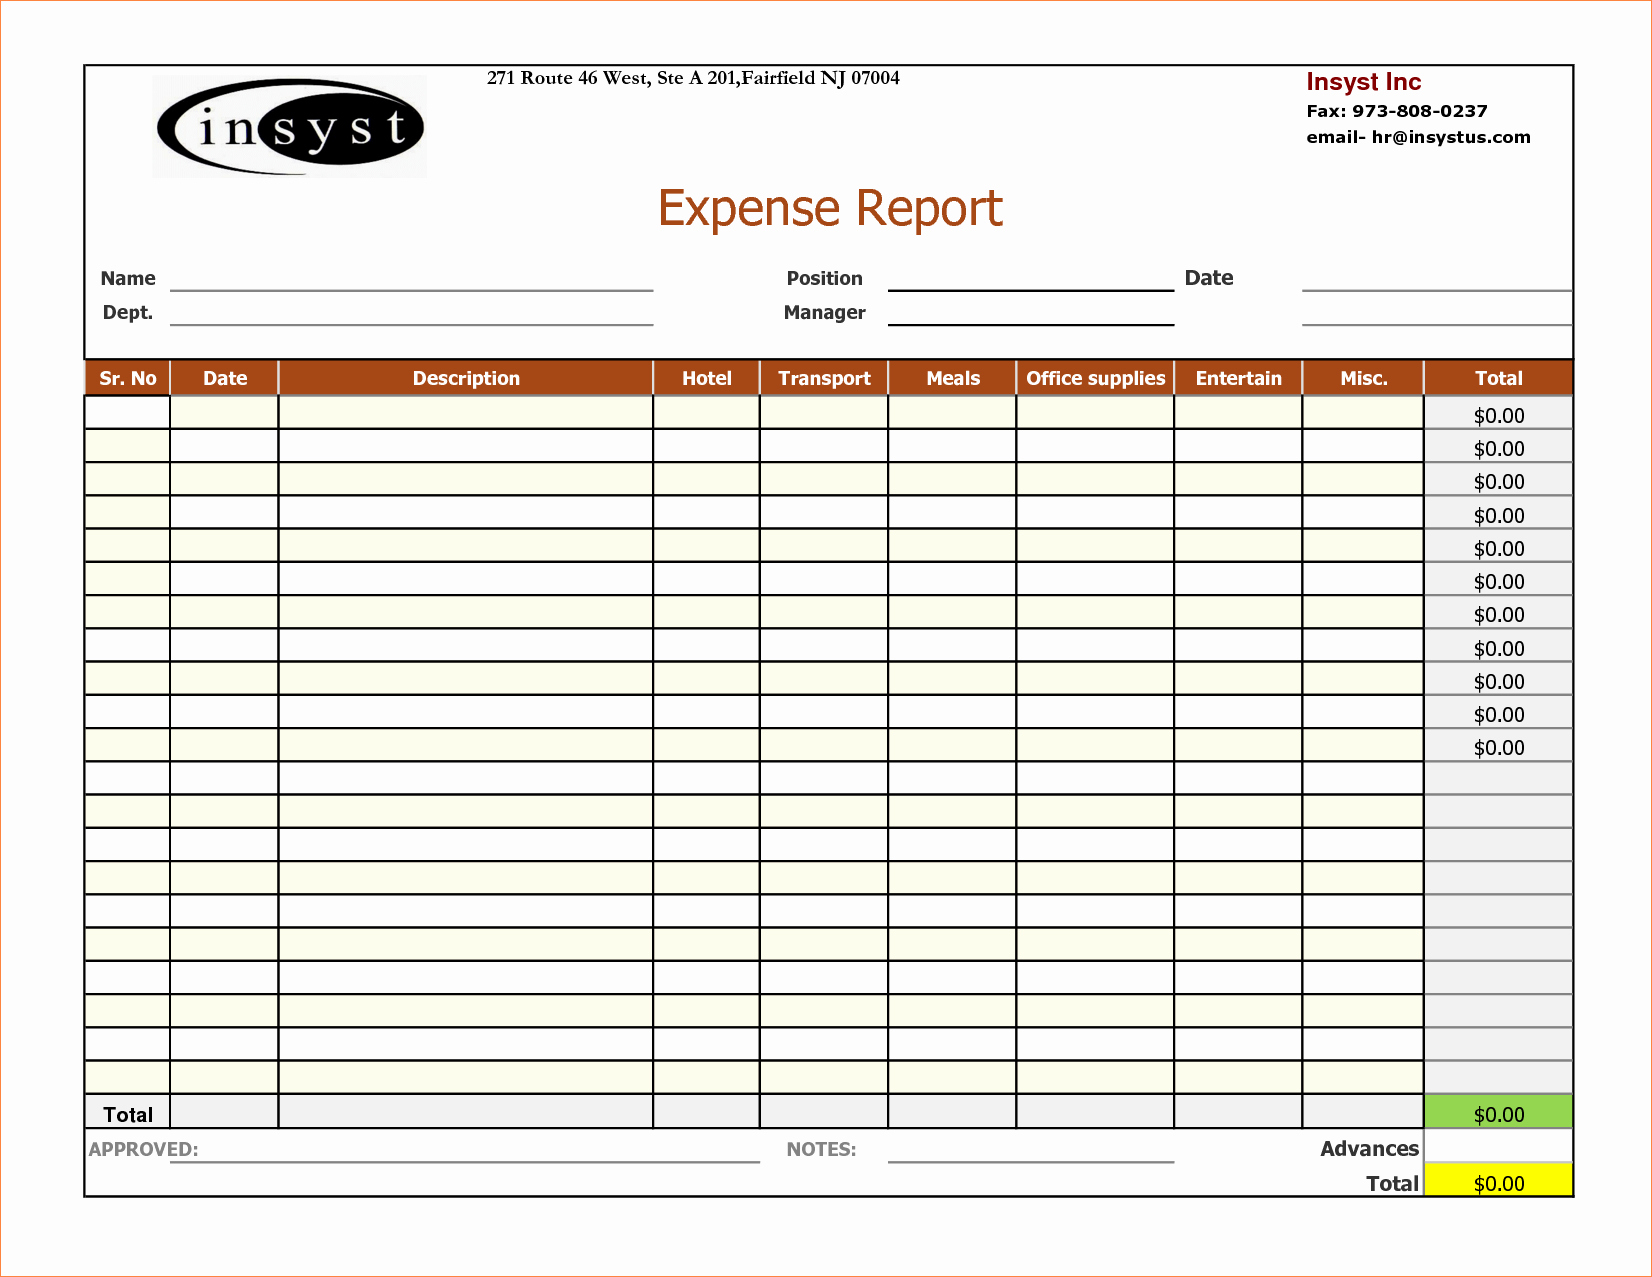 Expense Report Template Excel Free Inspirational 5 Free Expense Report Template